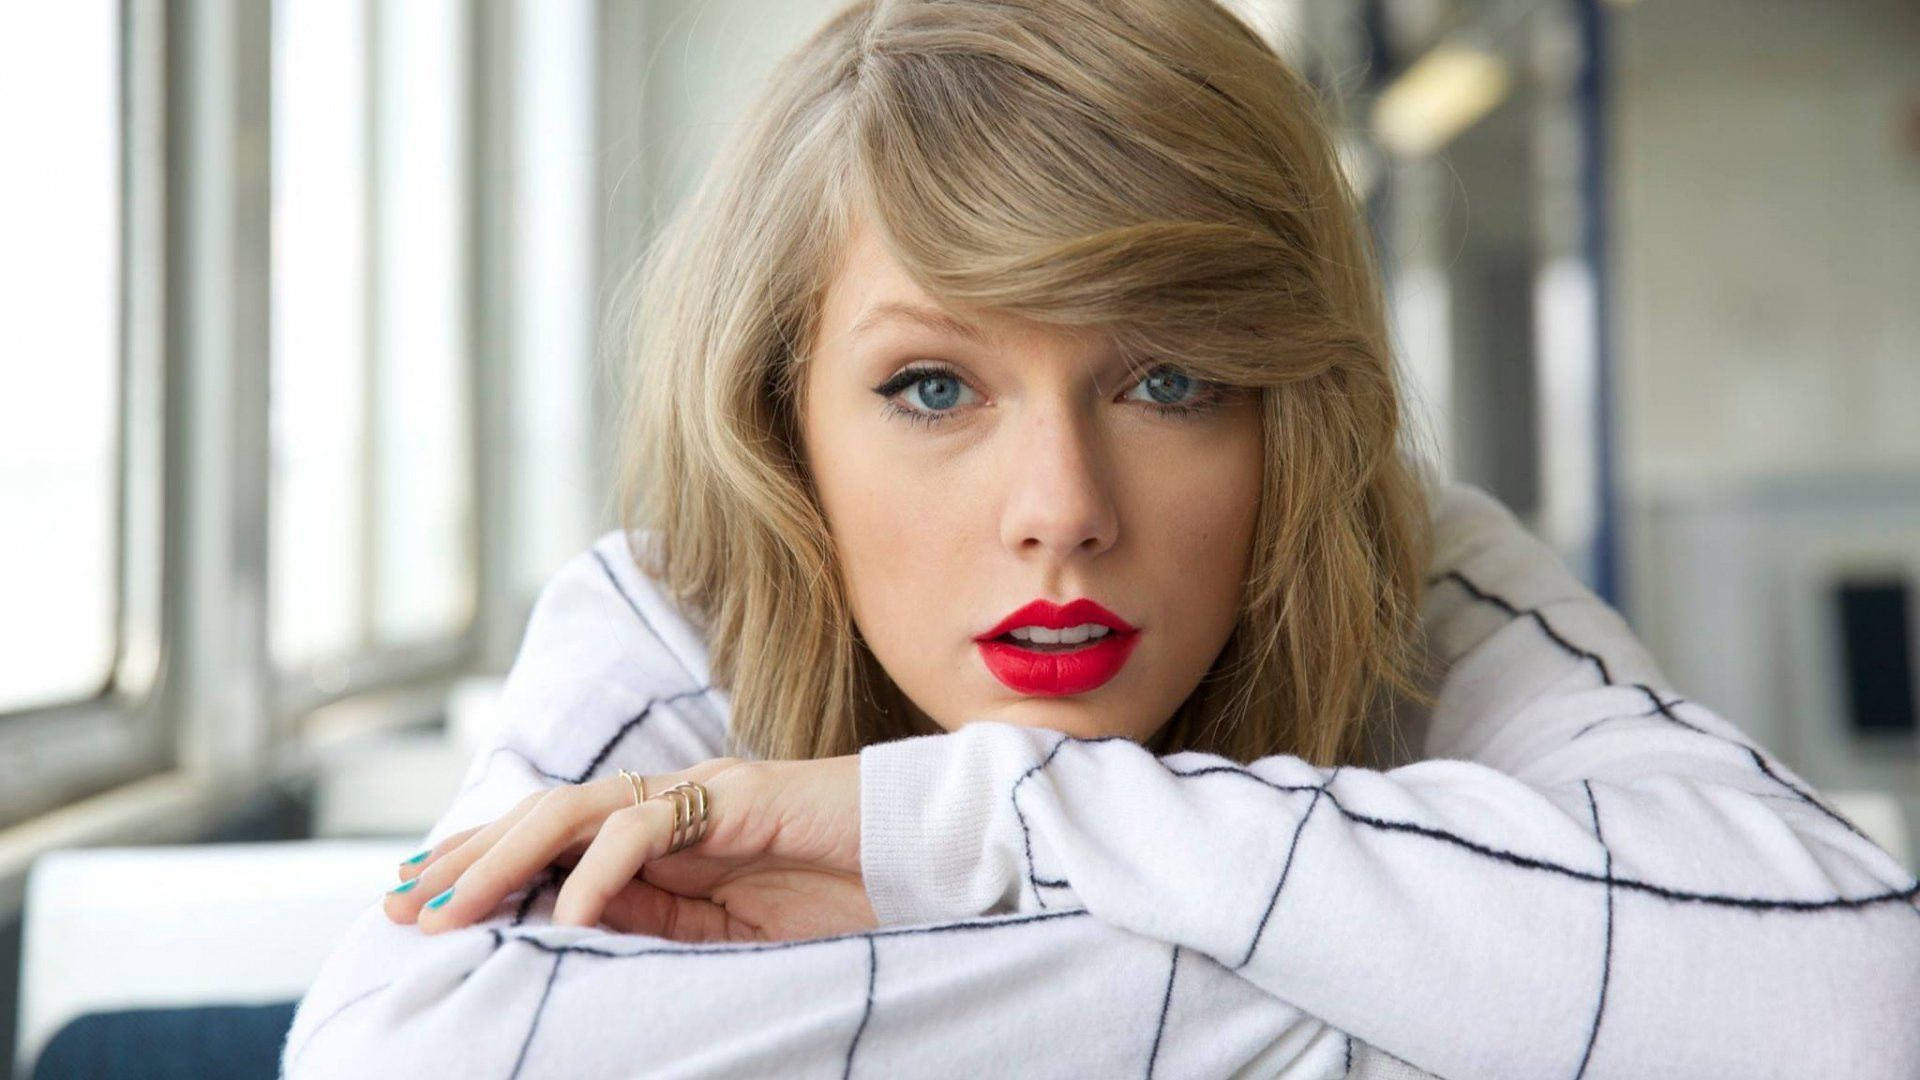 Taylor Swift Wallpapers Mobile On High Resolution Wallpaper Taylor Swift Style Taylor Swift Pictures Taylor Alison Swift